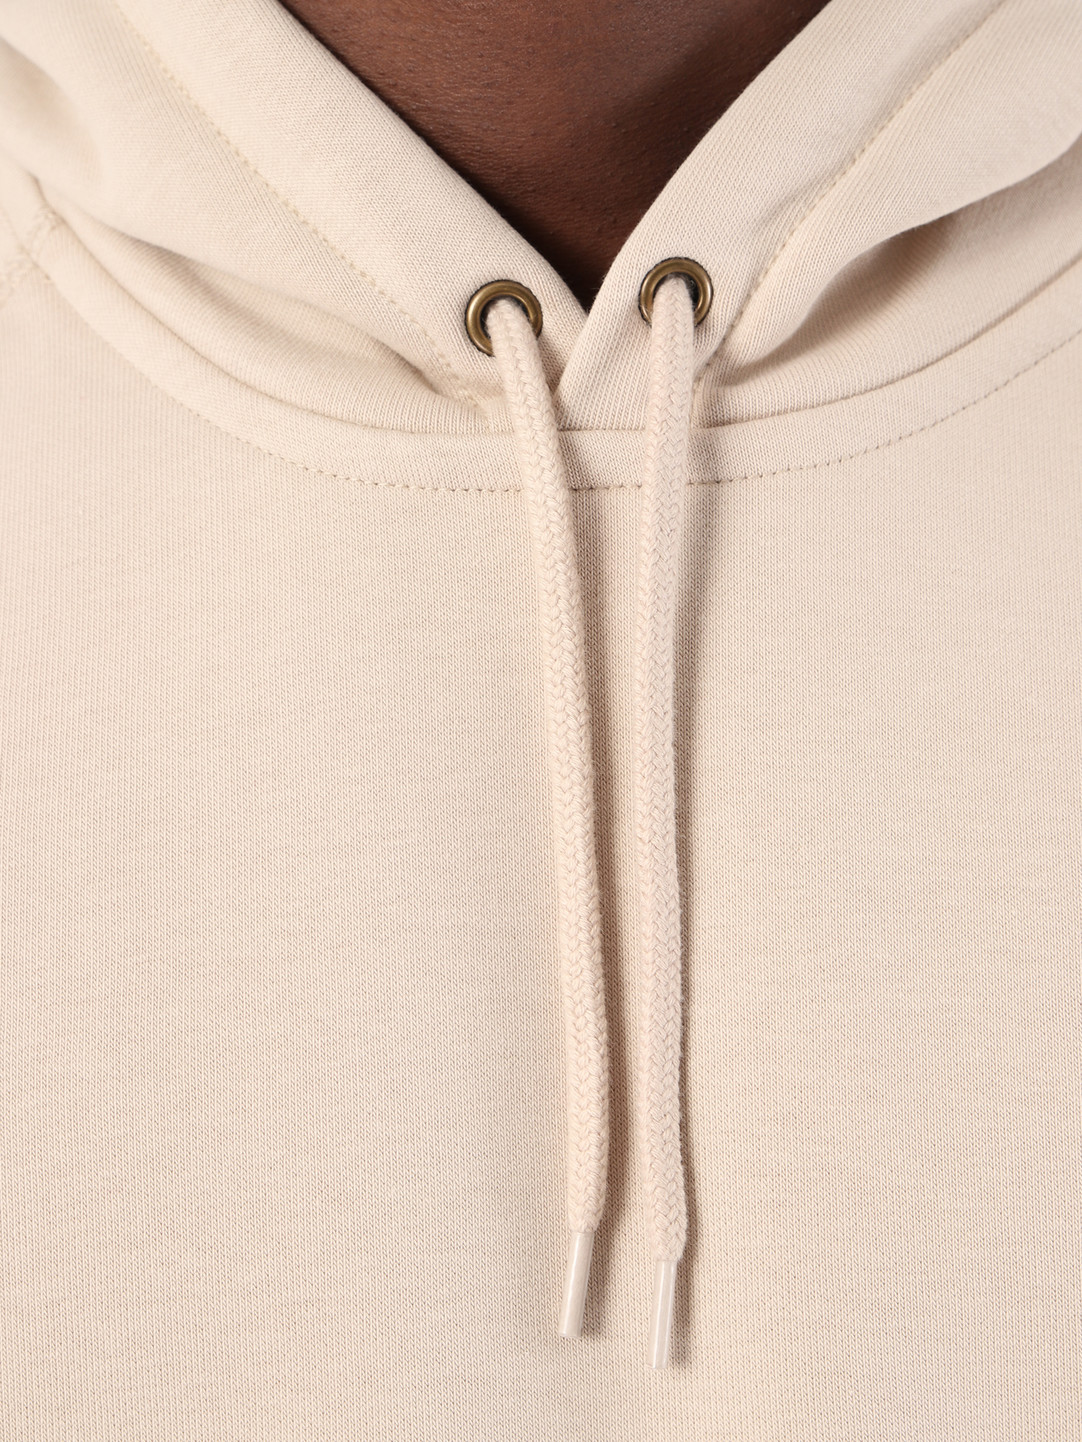 Carhartt WIP Carhartt WIP Hooded Chase Sweat Boulder Gold 61102099